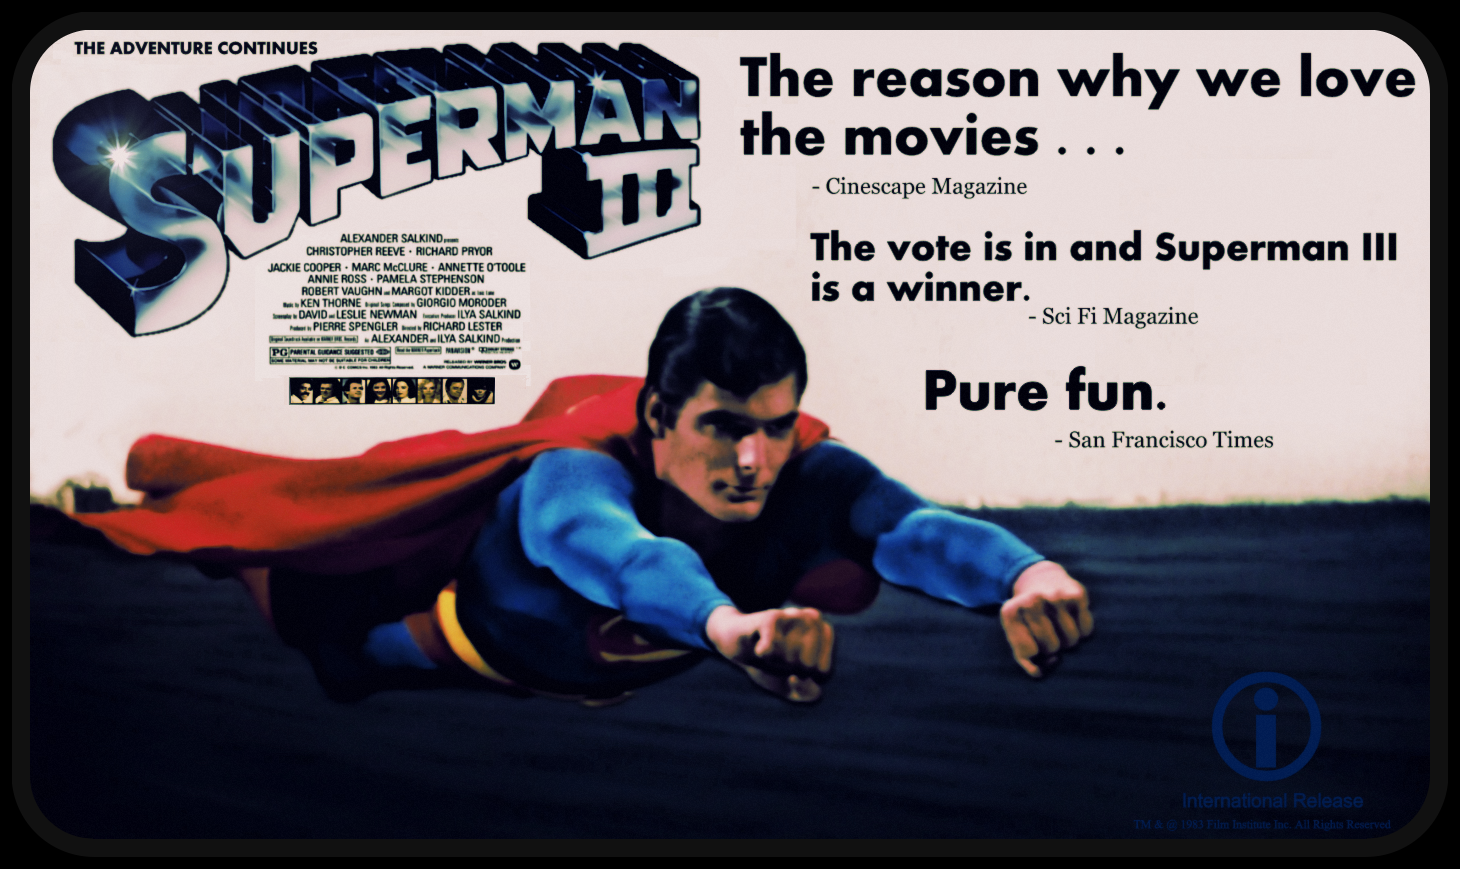 The vote was later recounted and  Superman III  deemed a TOTAL LOSER!